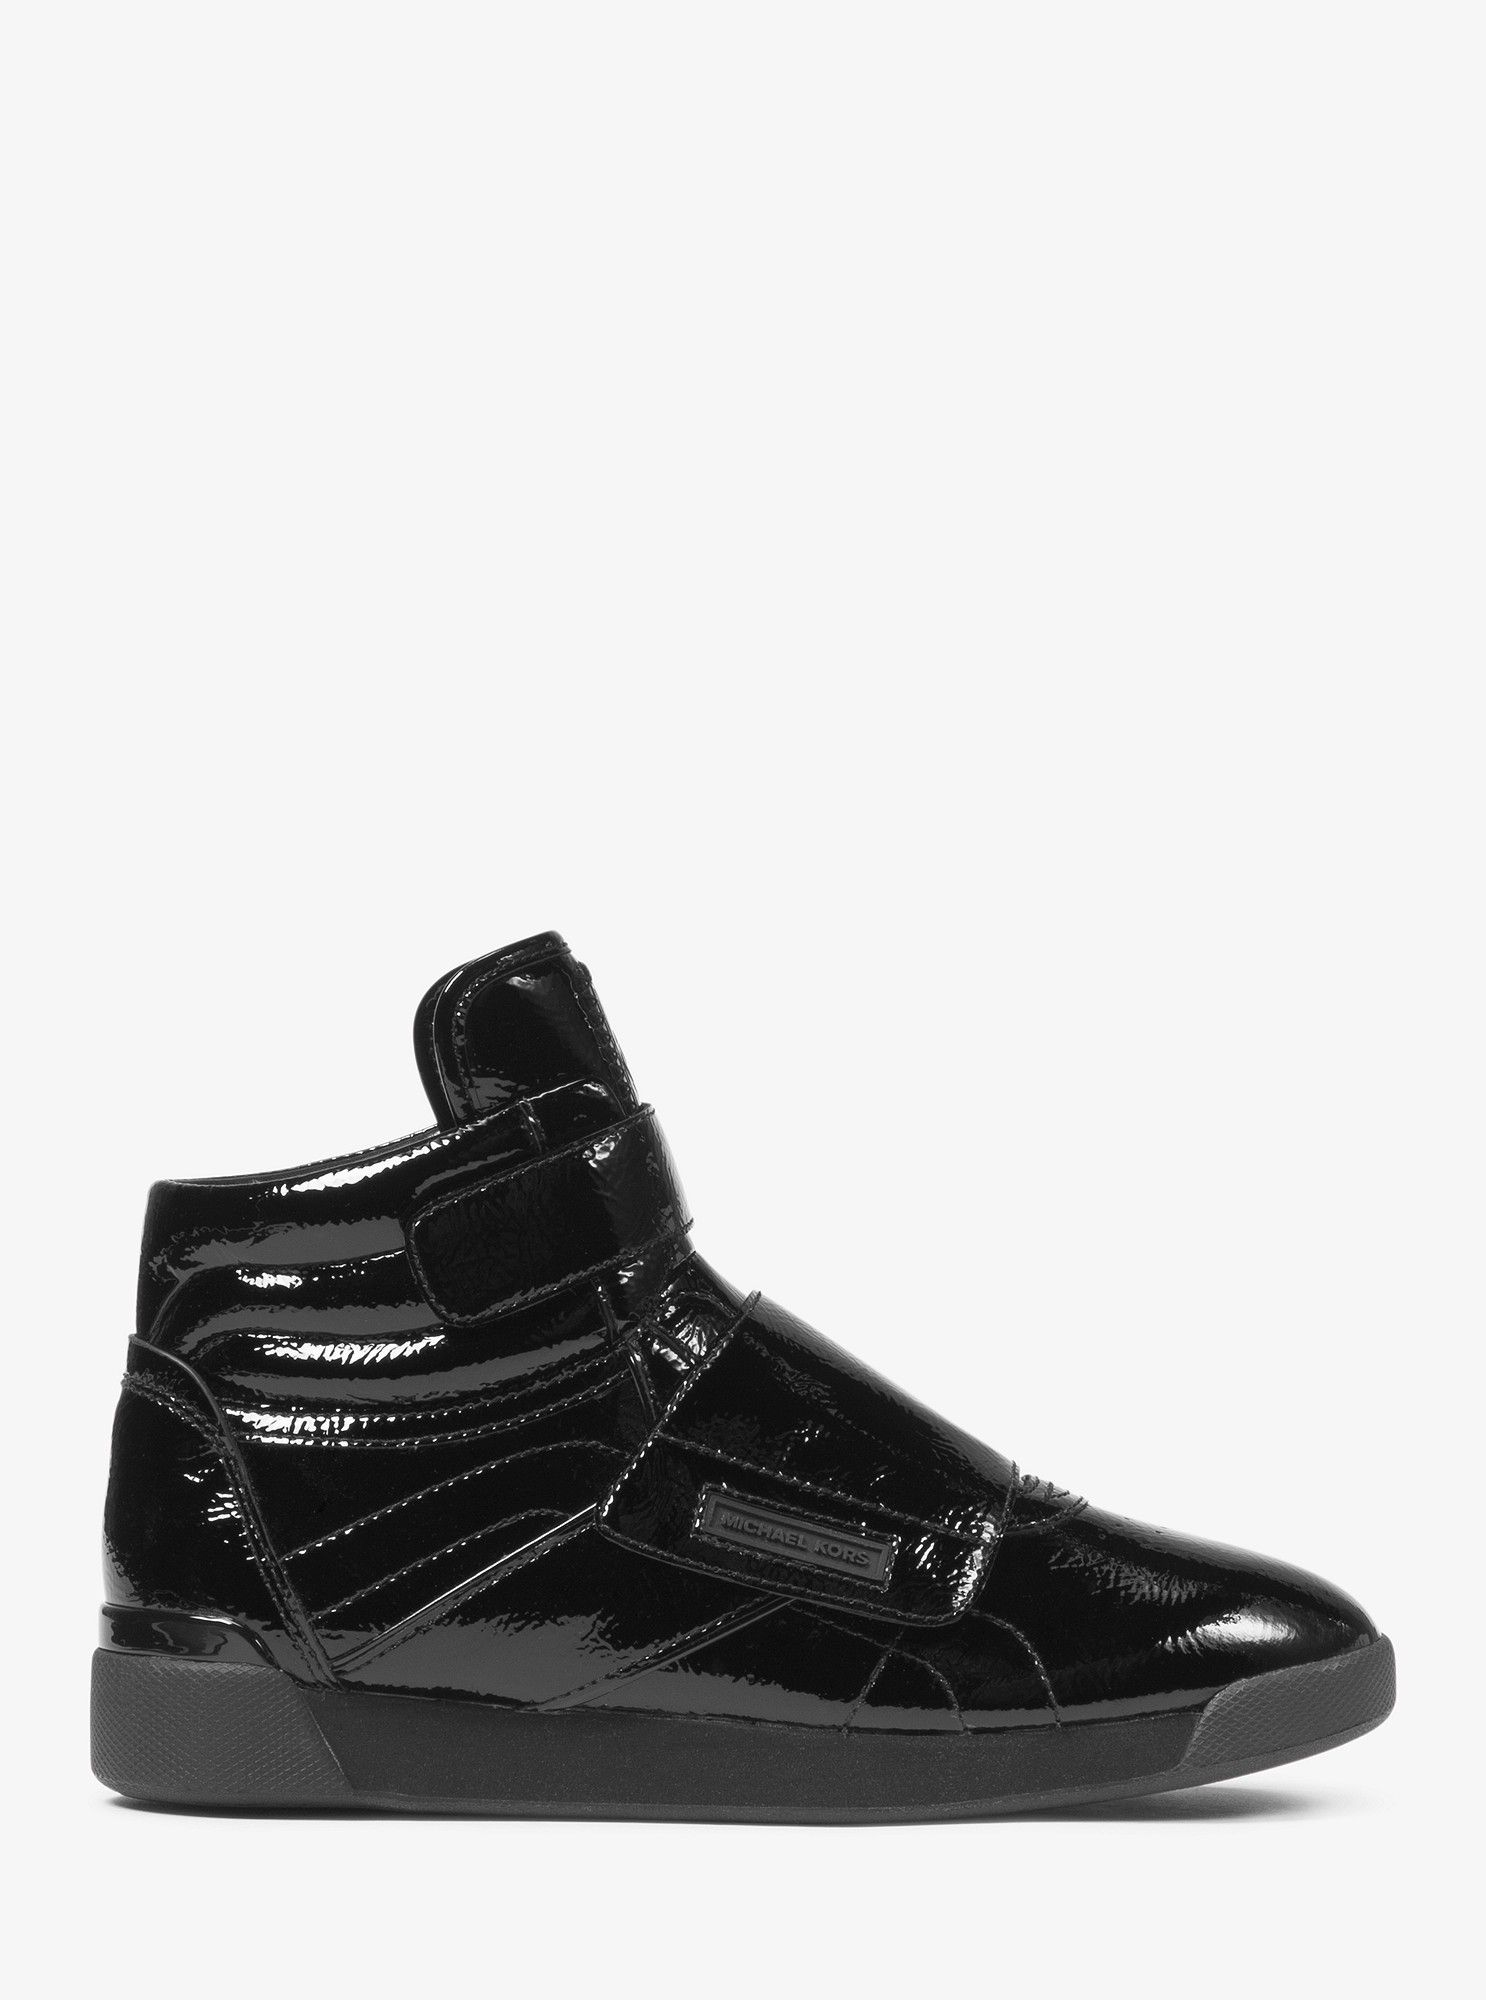 c7e7d4c082d Michael Kors Addie Patent Leather High-Top Sneaker - 5 in 2019 ...